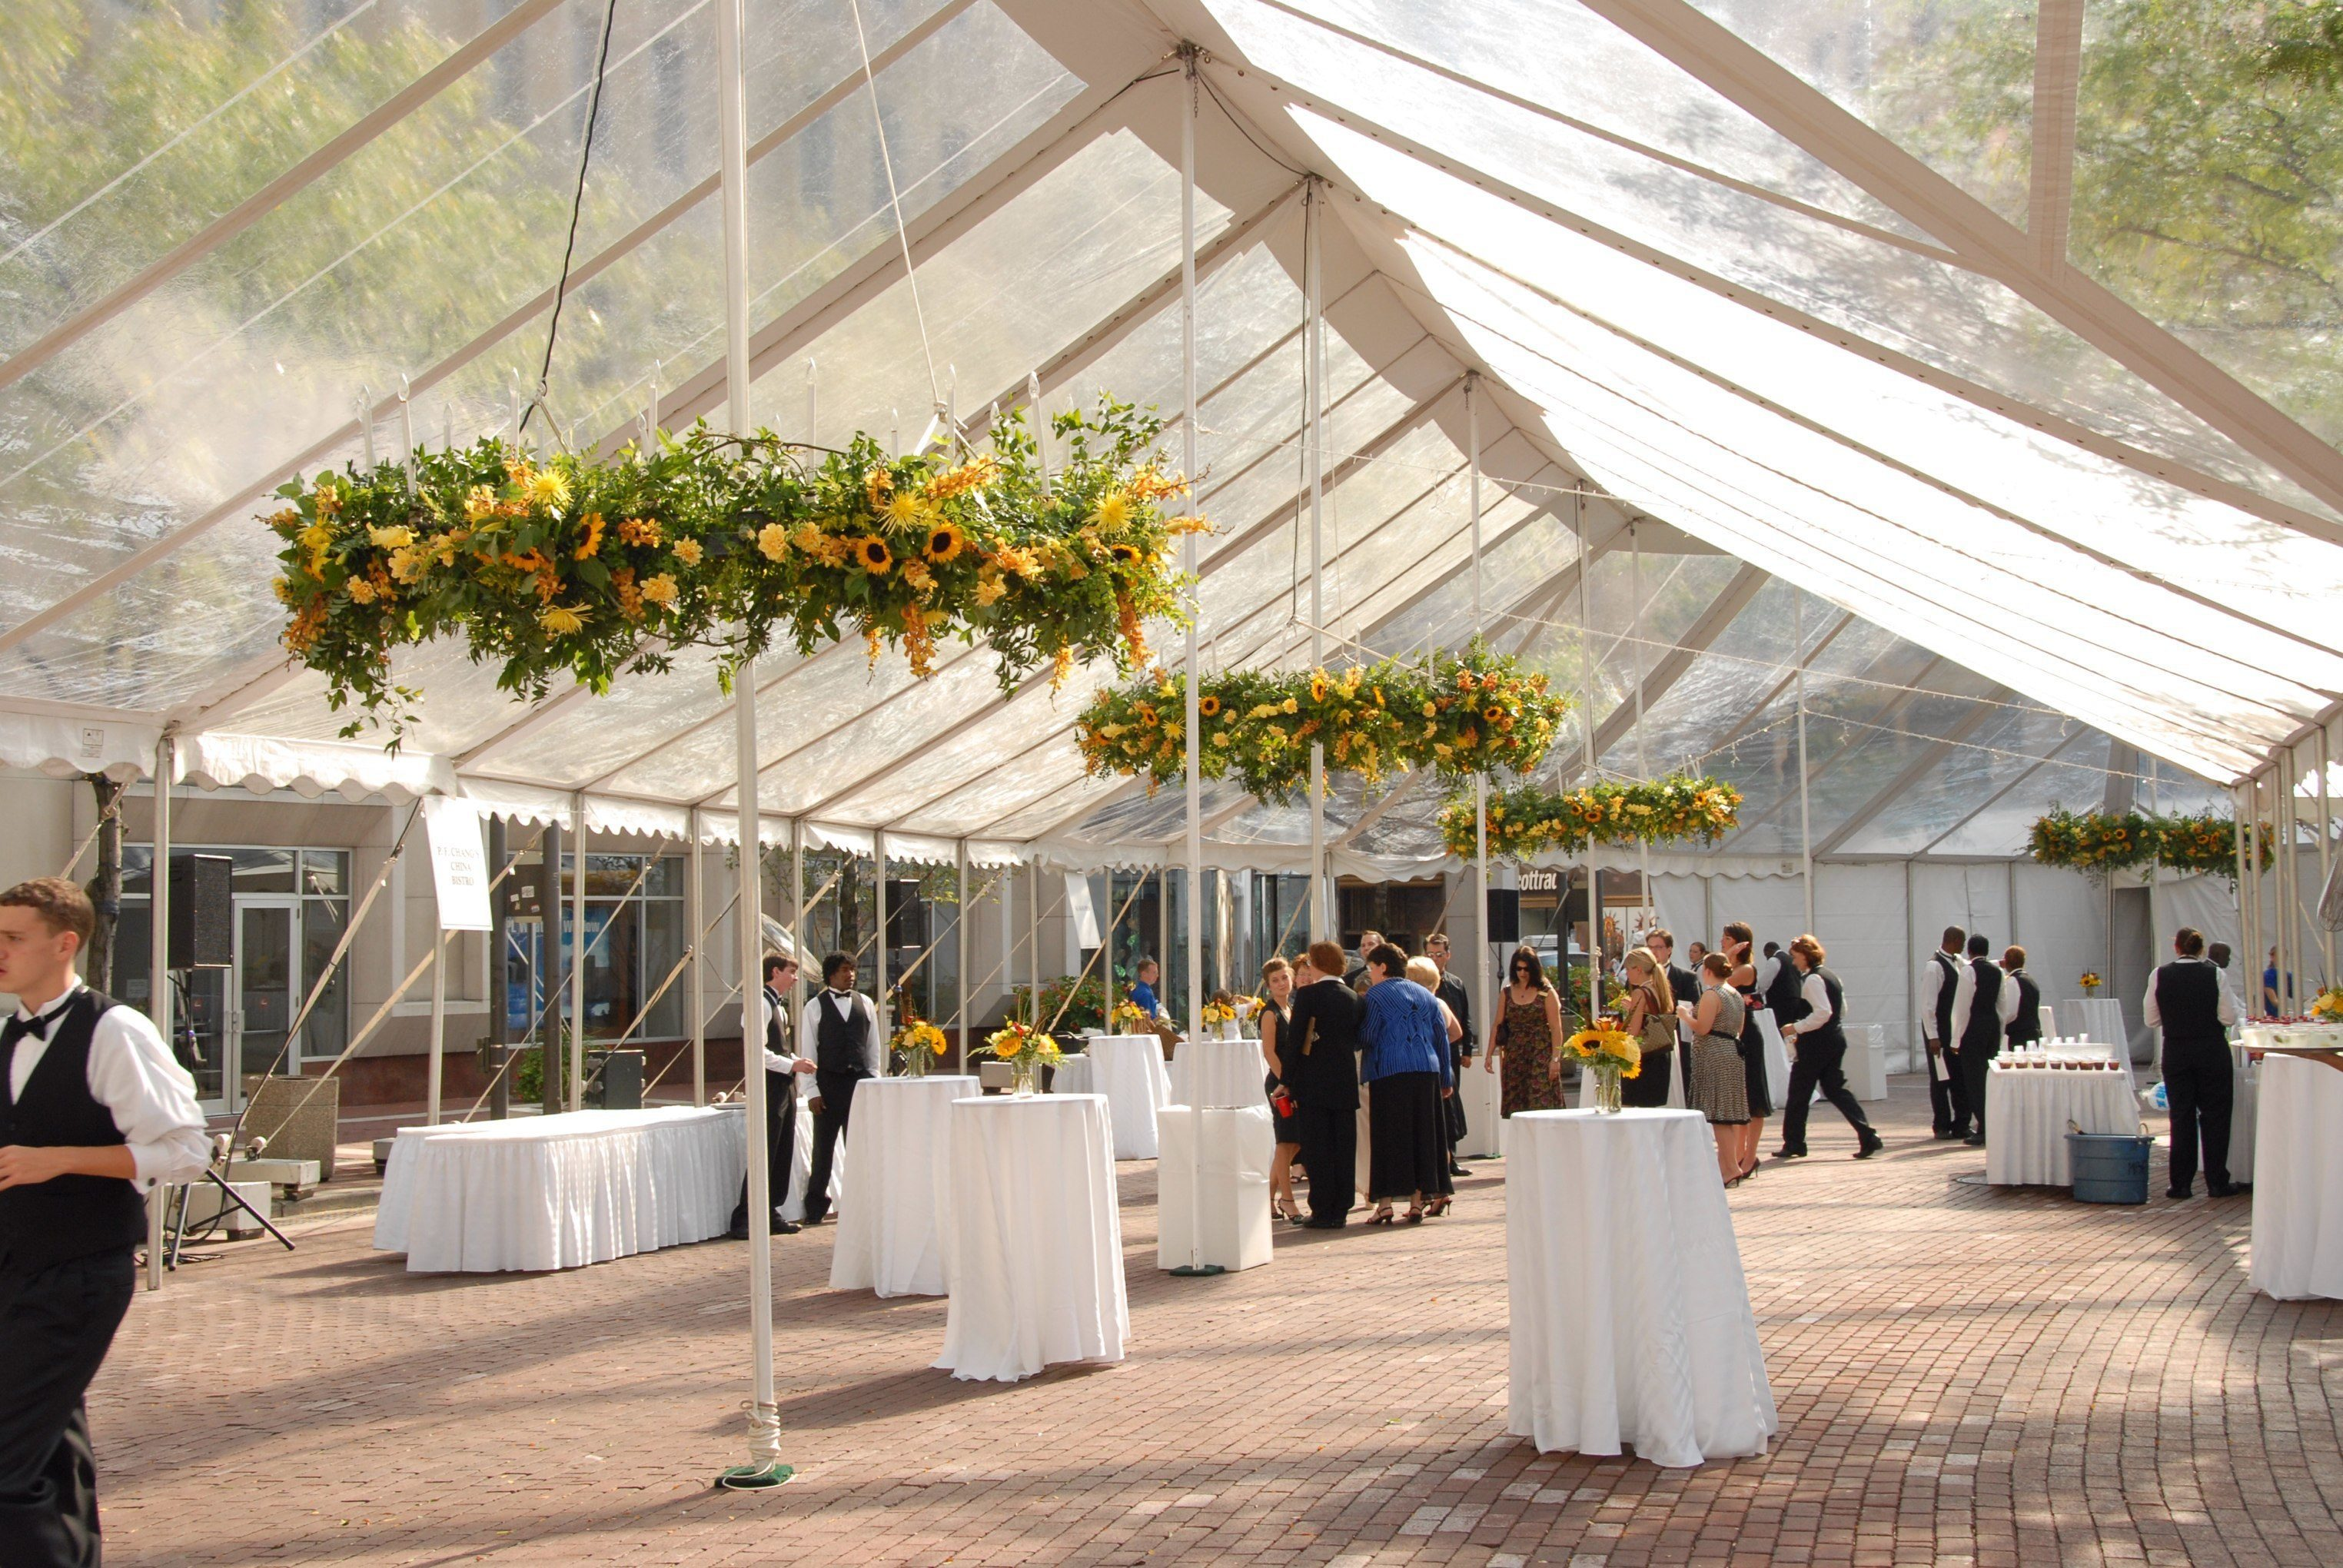 Backyard Tent Wedding Reception Ideas : Indianapolis Wedding Tent Rental Tips  A Classic Party Rental